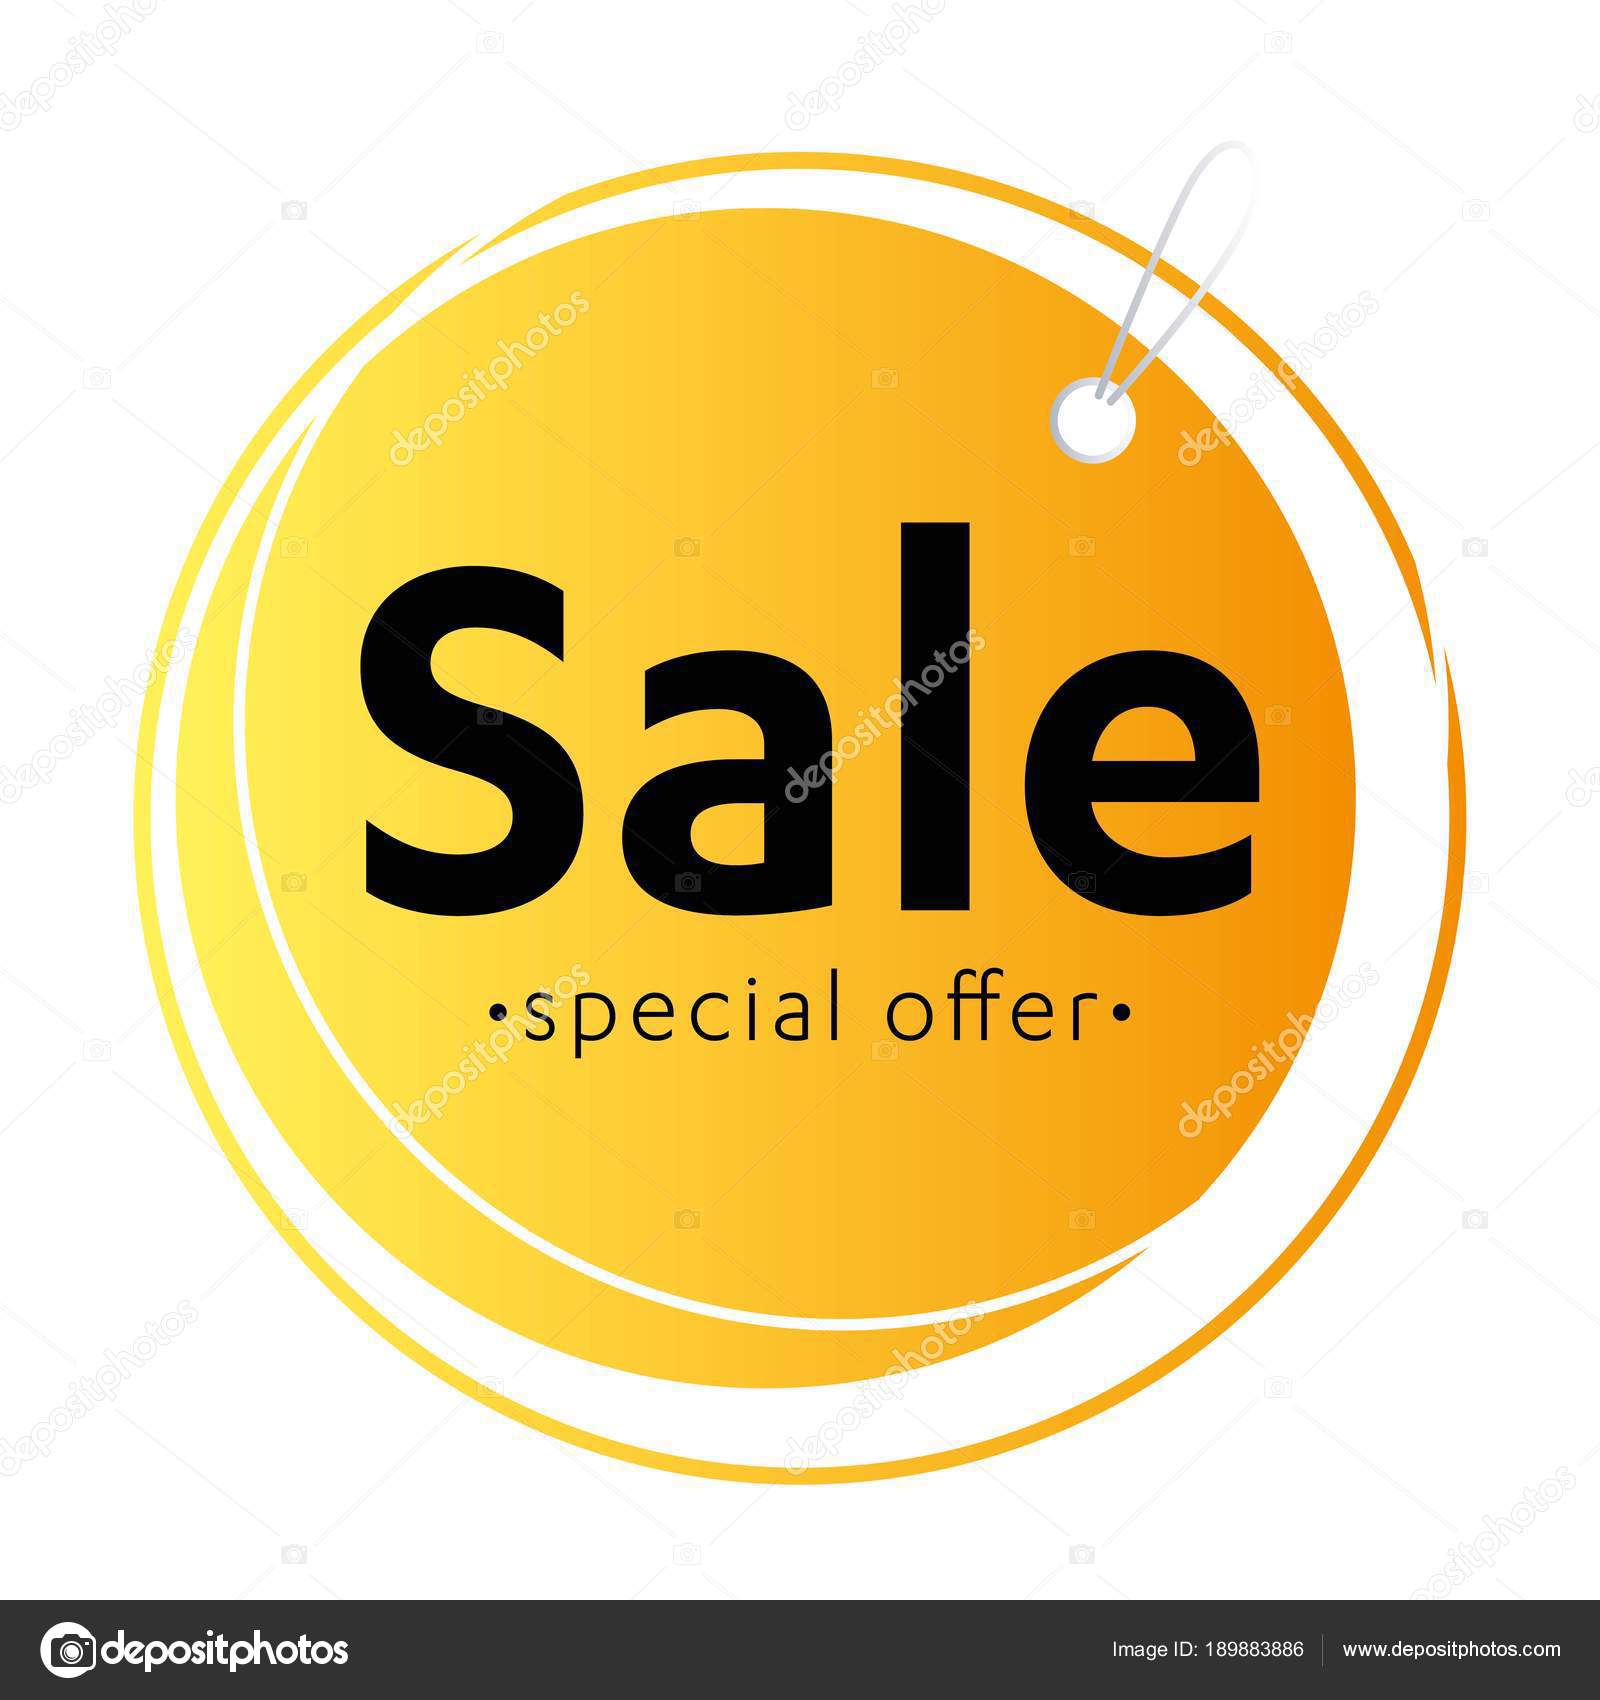 Red Sale Lable Shop Isolated Strickers Icons Signs Tag Illustrations Stock Vector C Designmaster81 189883886 With the white label seo tool, you can style the platform to your liking and access it under your own domain. https depositphotos com 189883886 stock illustration red sale lable shop isolated html